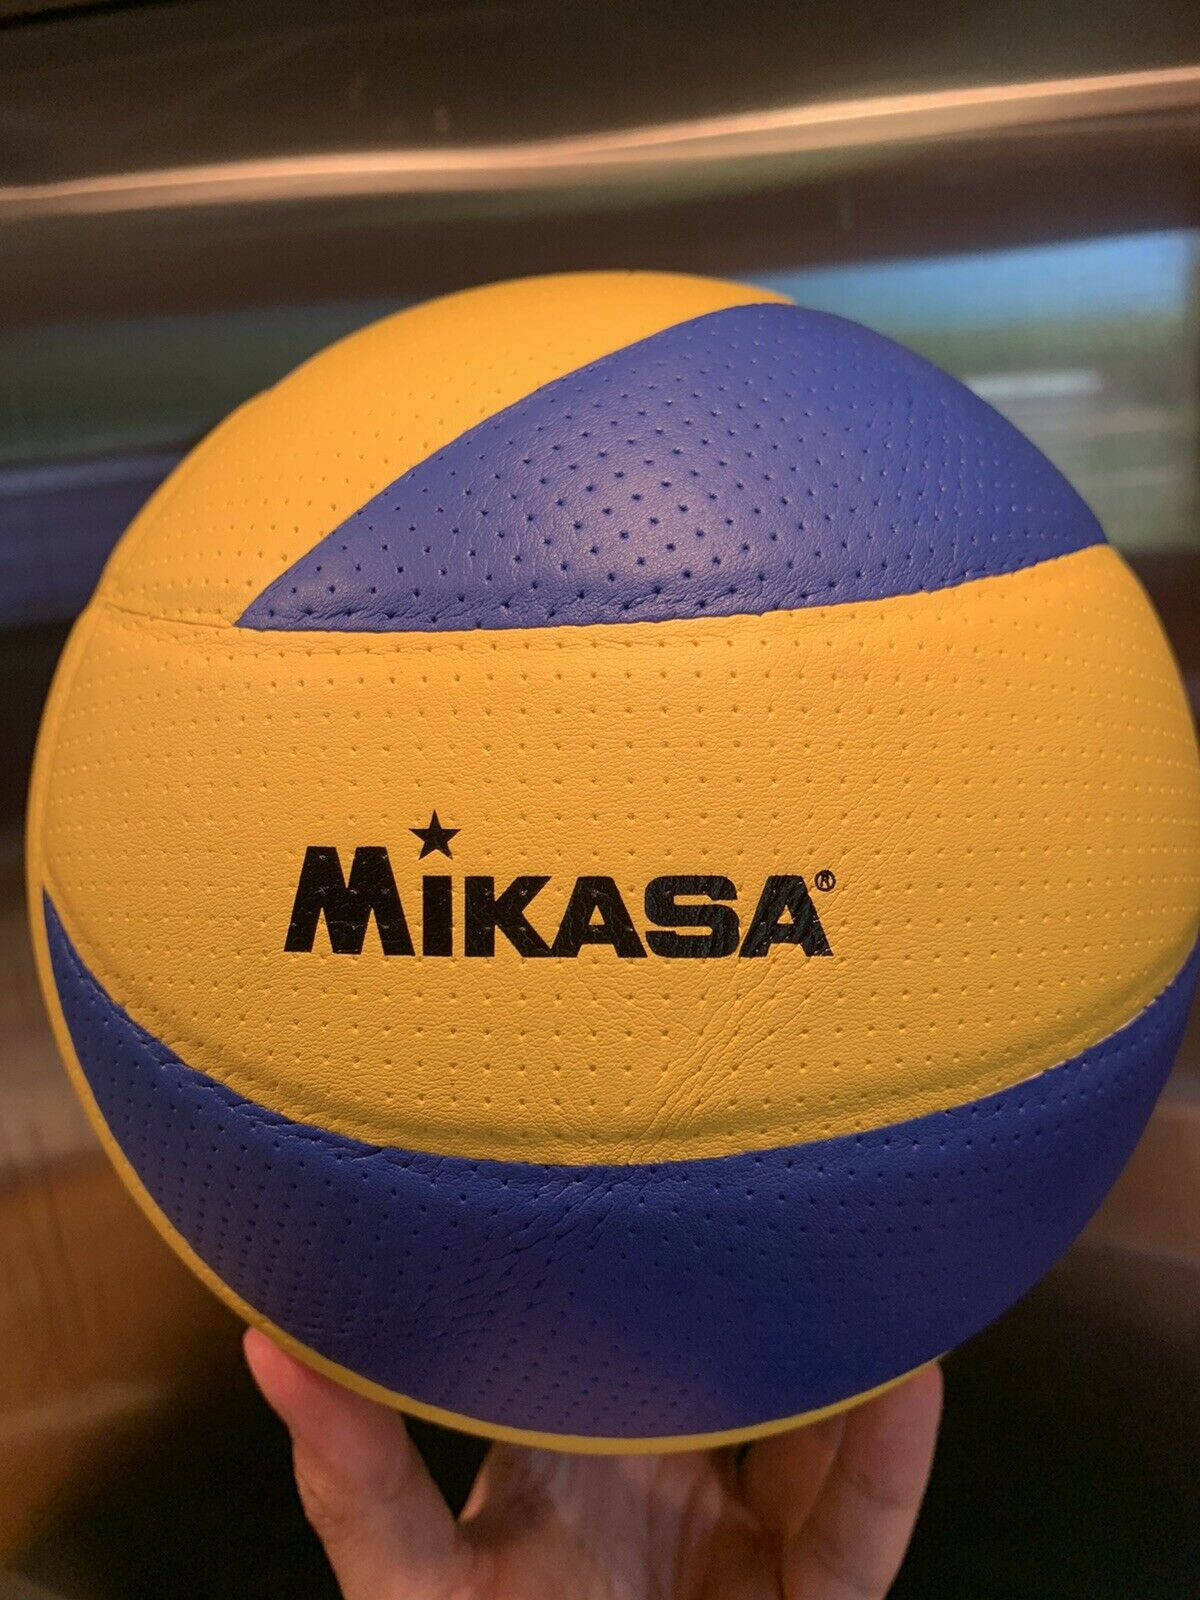 Mikasa Japan Volleyball Mva200 Official Fiva Approved Size 5 For Sale Online Ebay